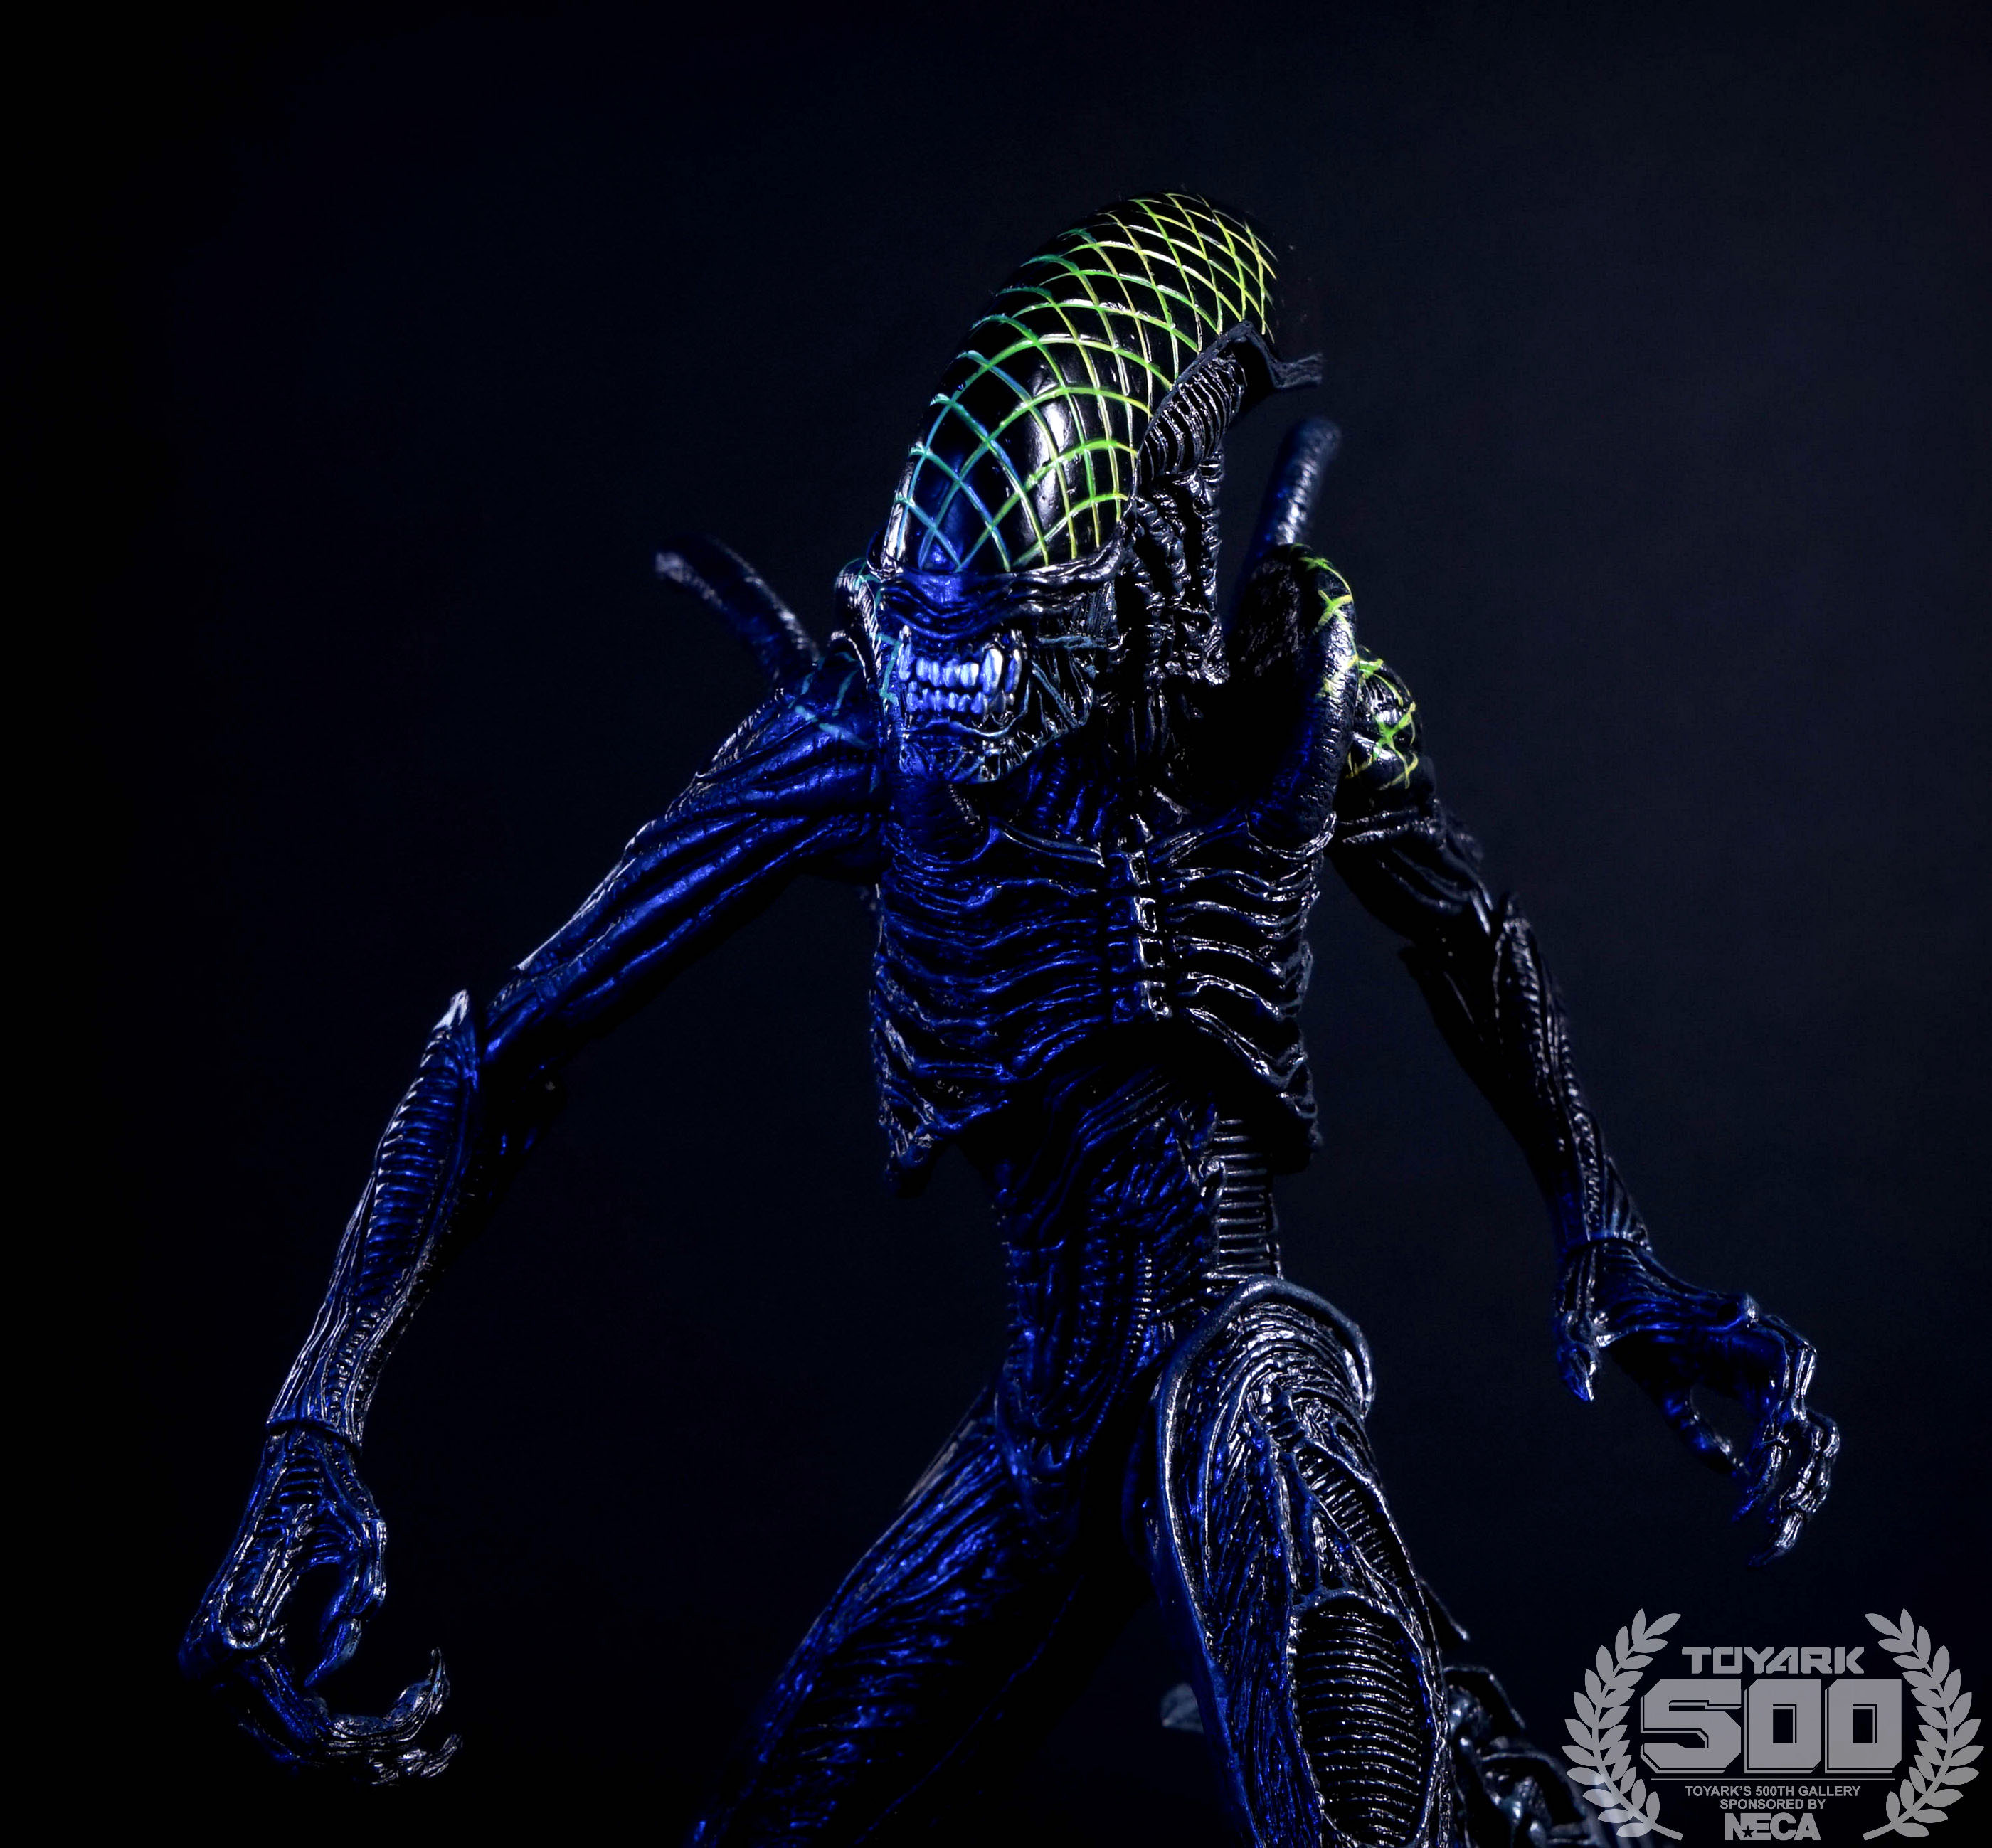 http://news.toyark.com/wp-content/uploads/sites/4/2016/01/Alien-Series-7-NECA-124.jpg